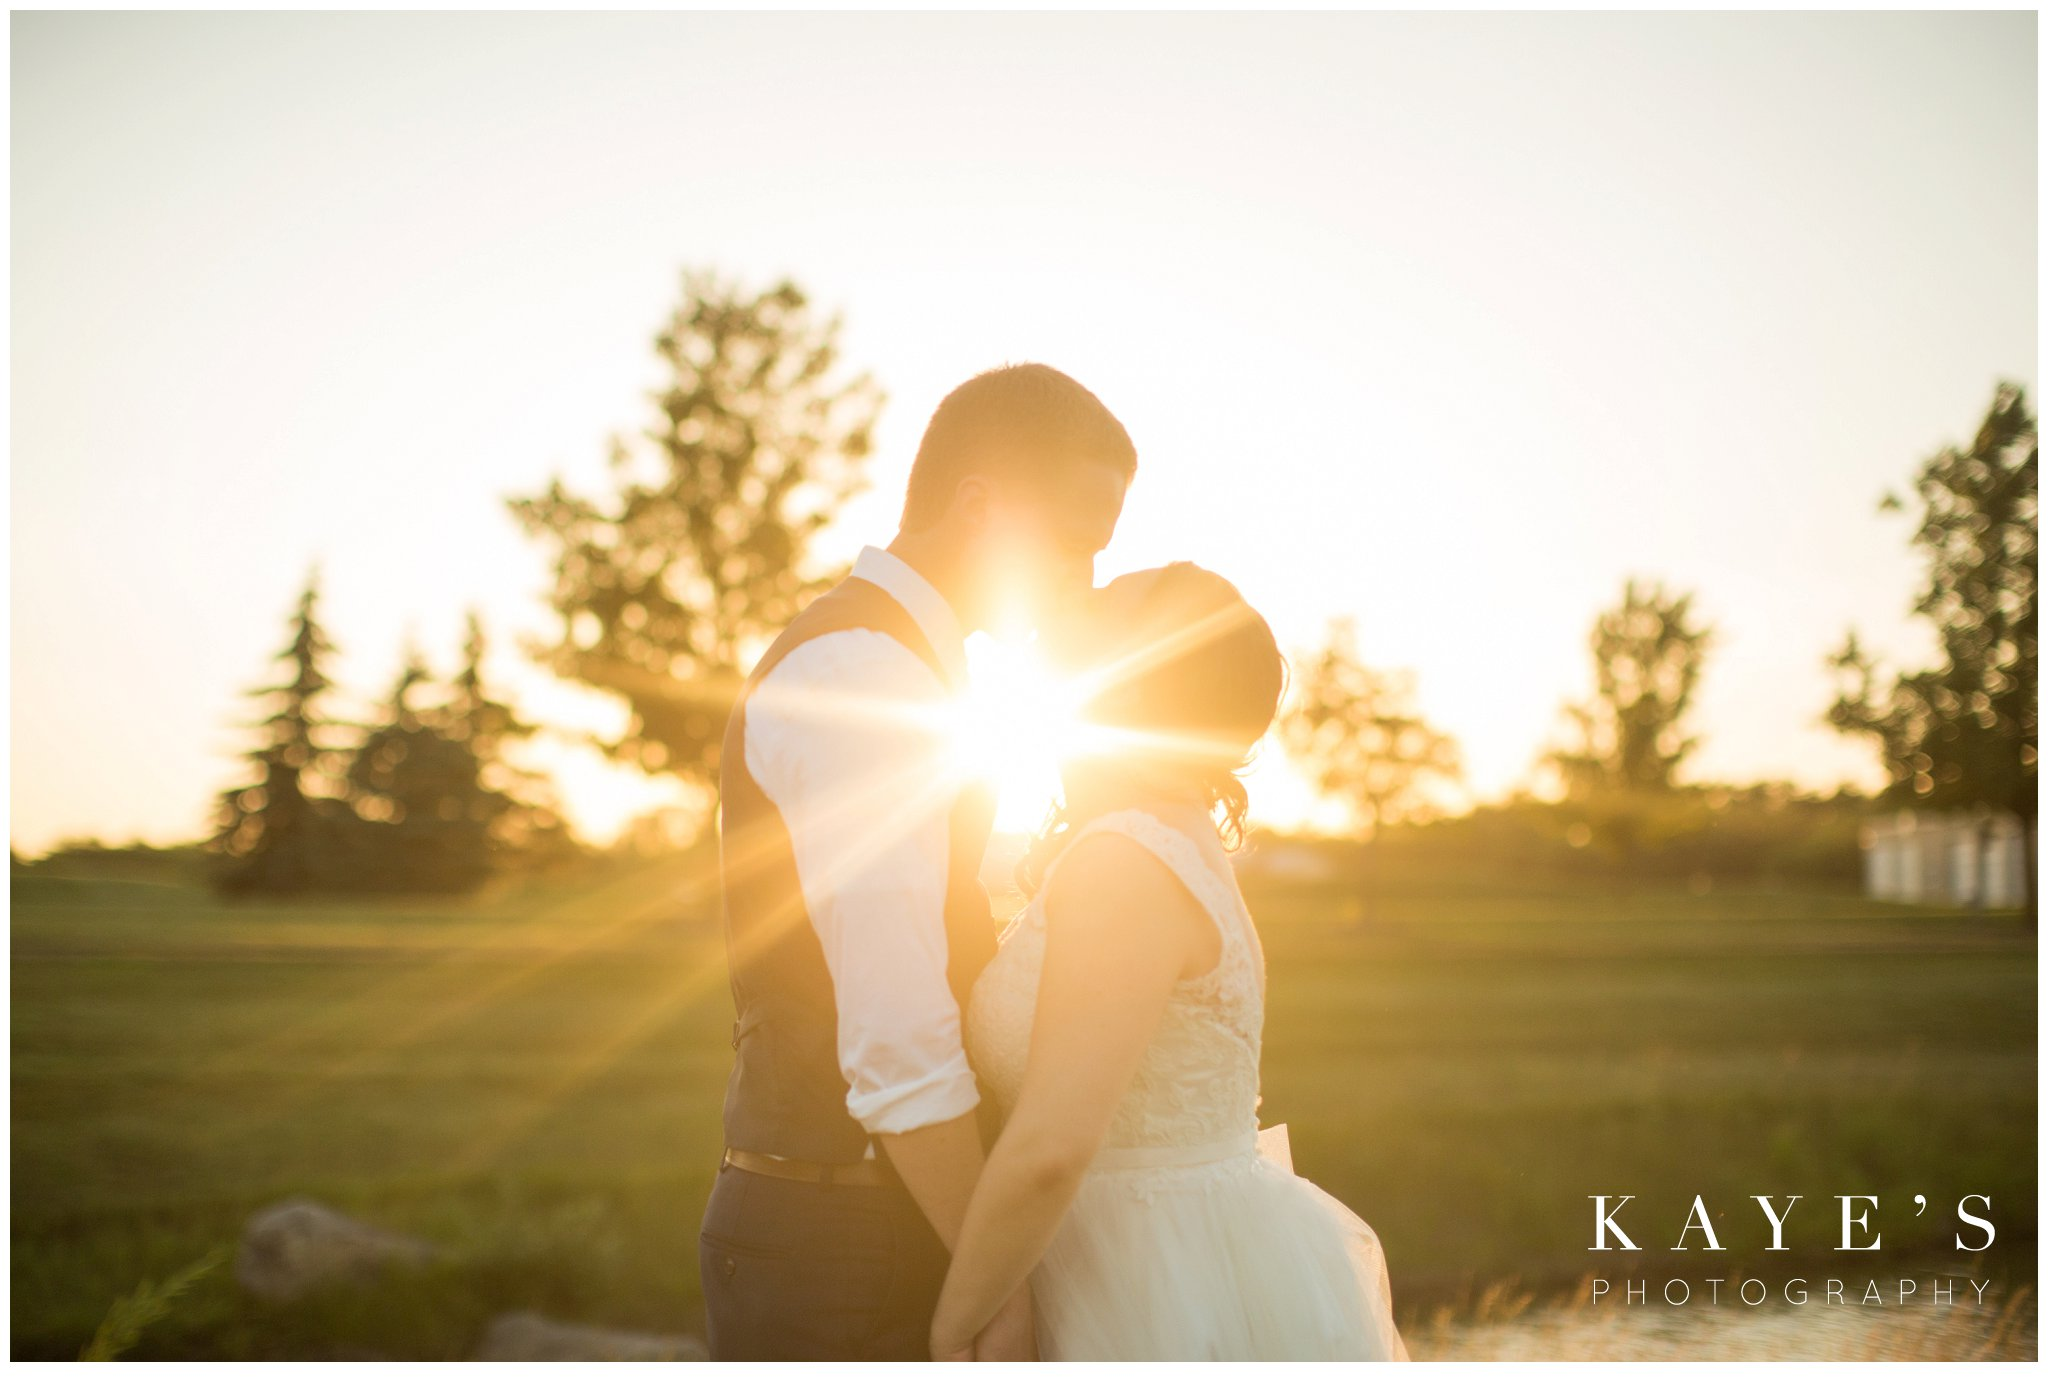 Kayes Photography- howell-michigan-wedding-photographer_0768.jpg